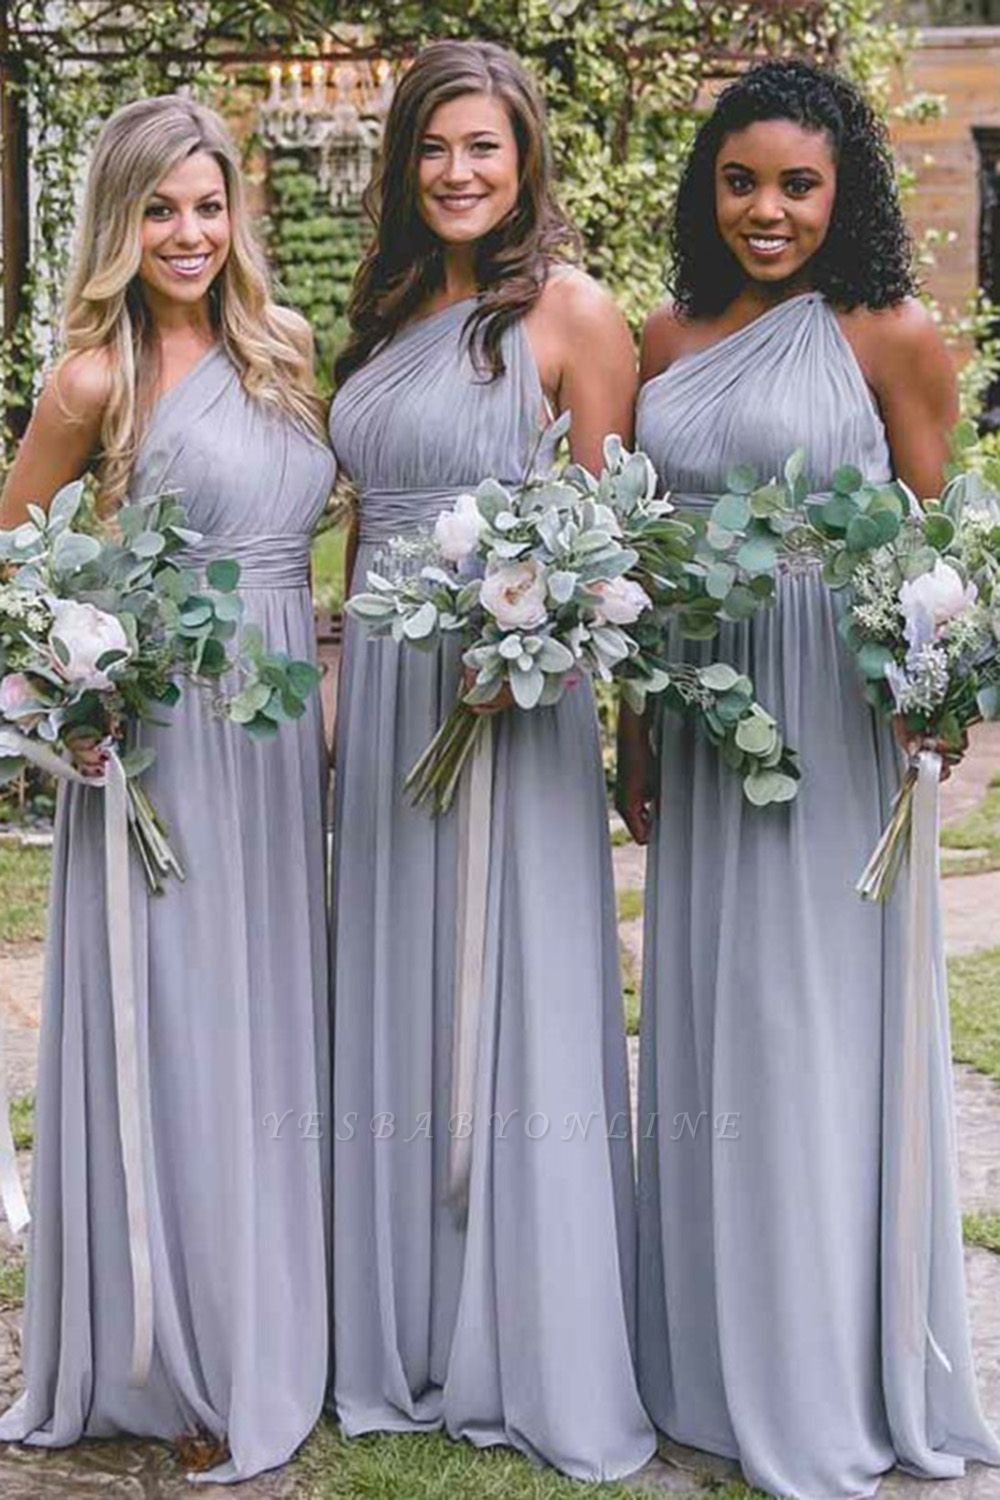 Lilac Convertible Long Cheap Chiffon Bridesmaid Dresses | Sexy Maid of Honor Dresses